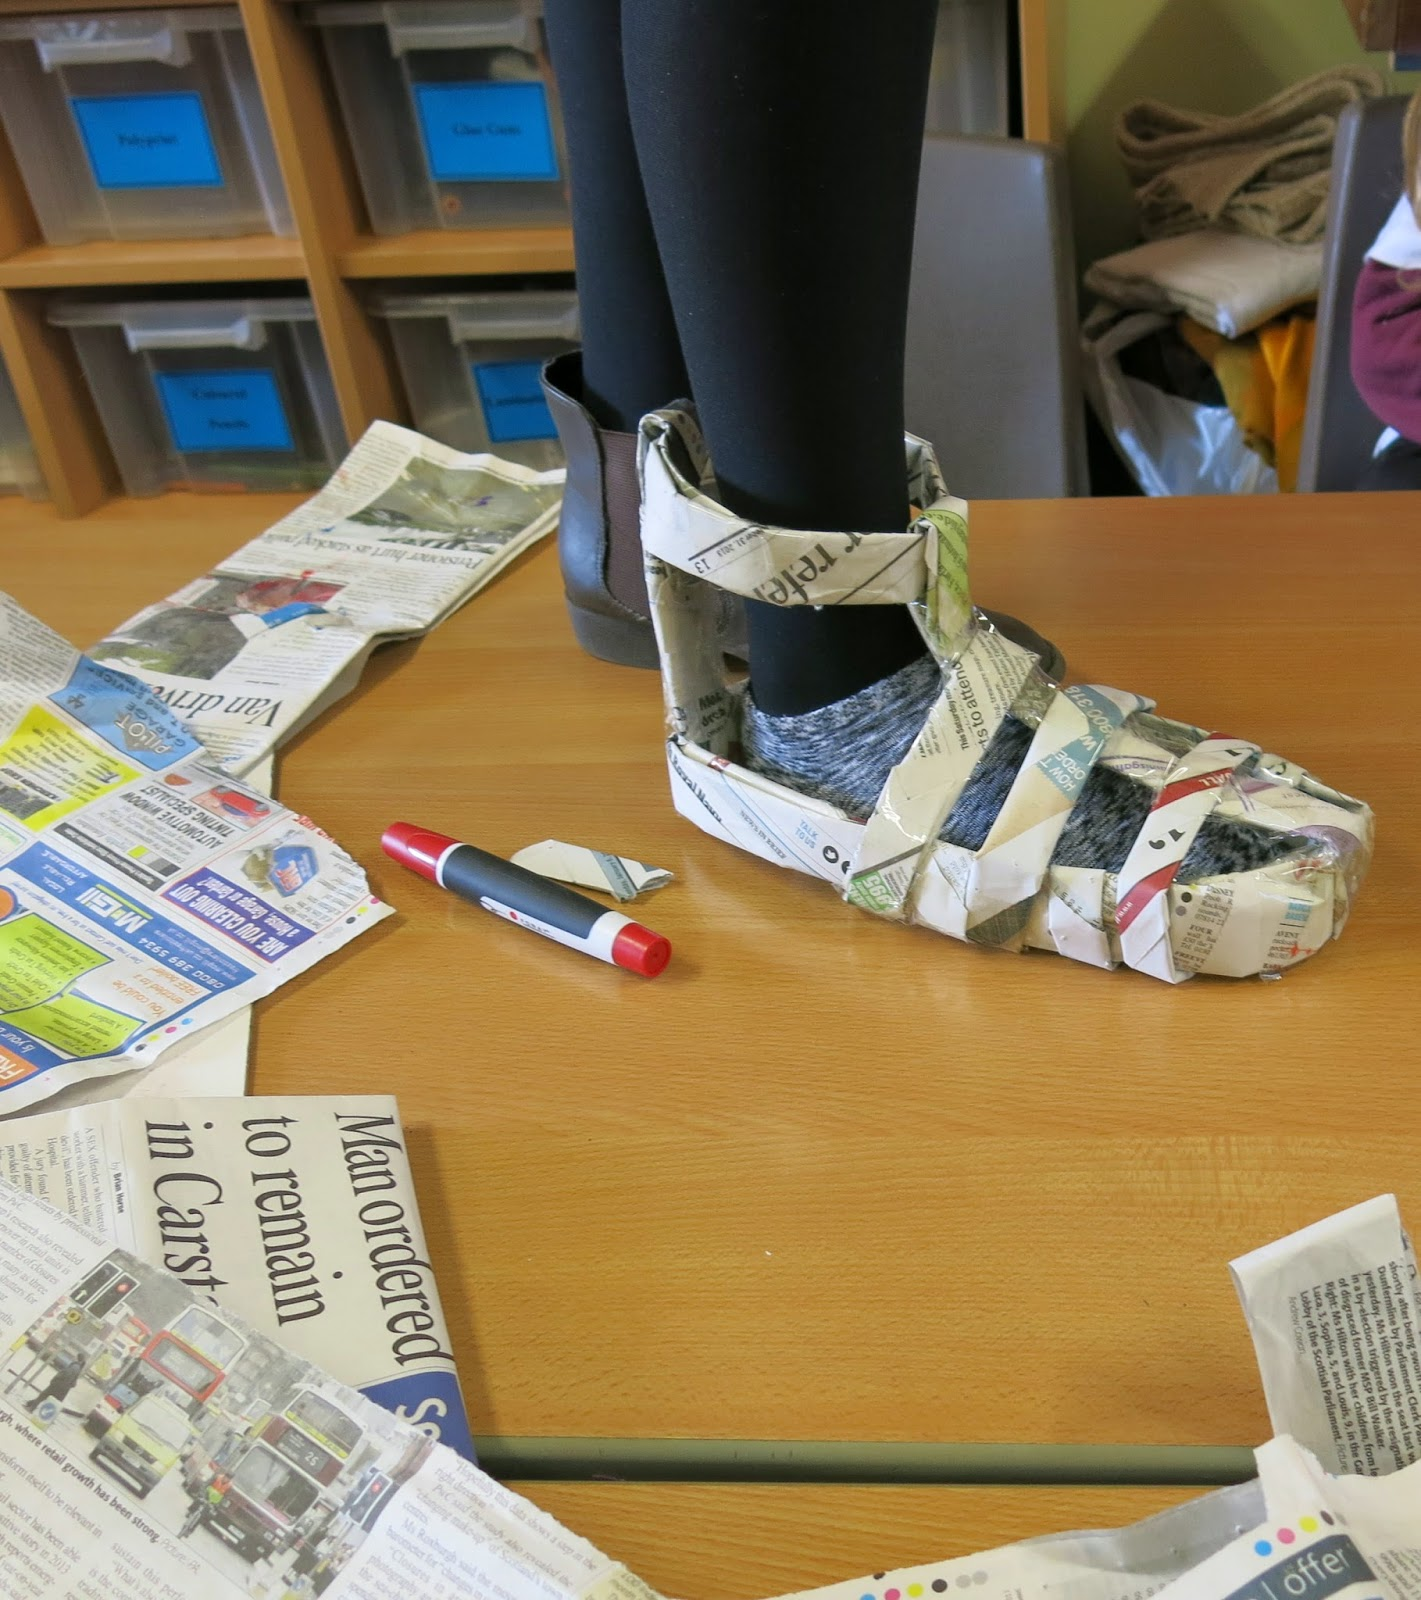 Mrs Crosbie Newspaper Shoes